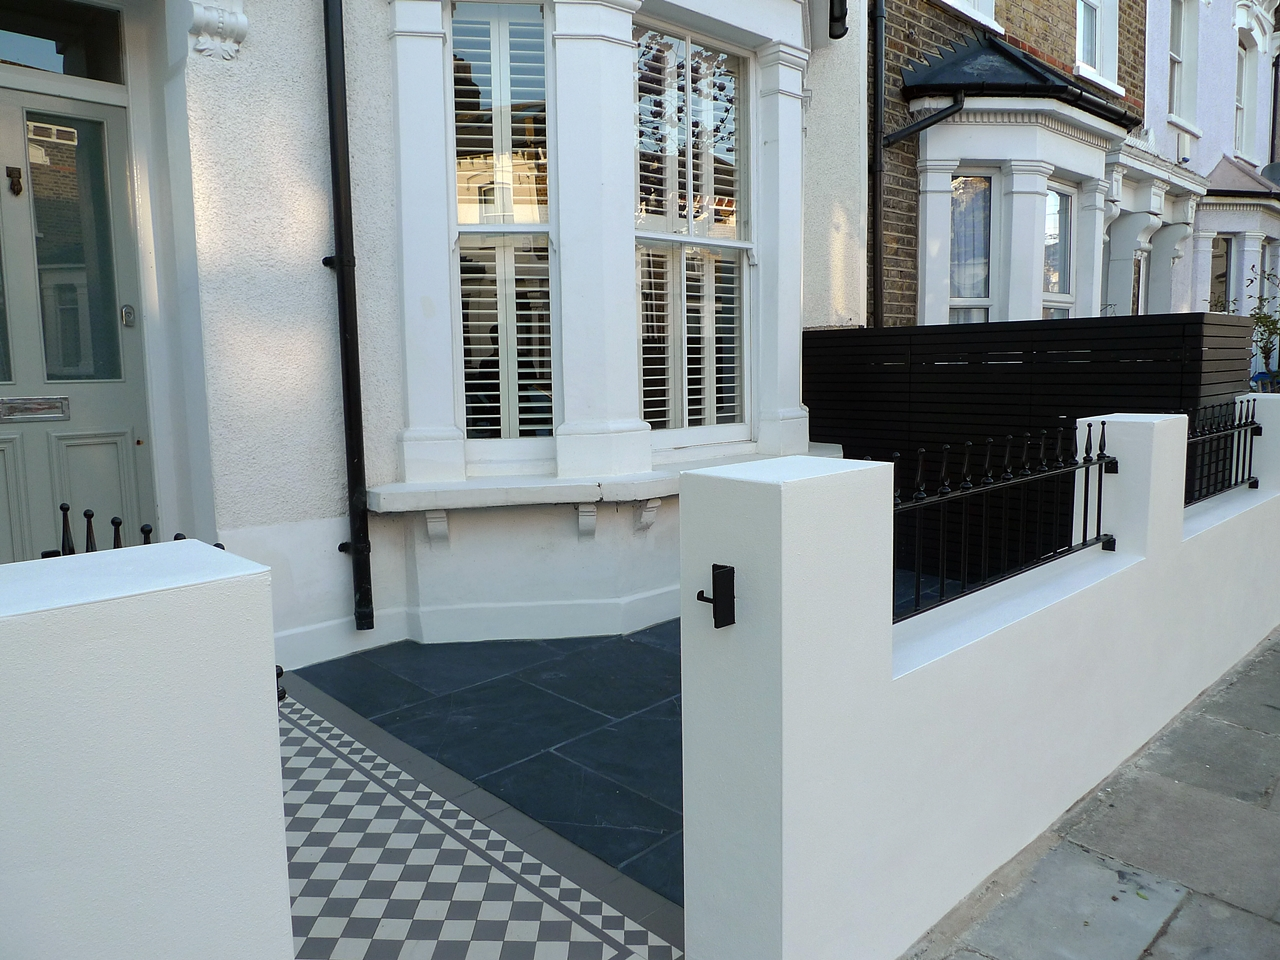 victorian front garden design london render plaster block wall slate paving bin bike store bespoke grey and white mosaicjpg 1280960 pinterest - Front Garden Ideas London